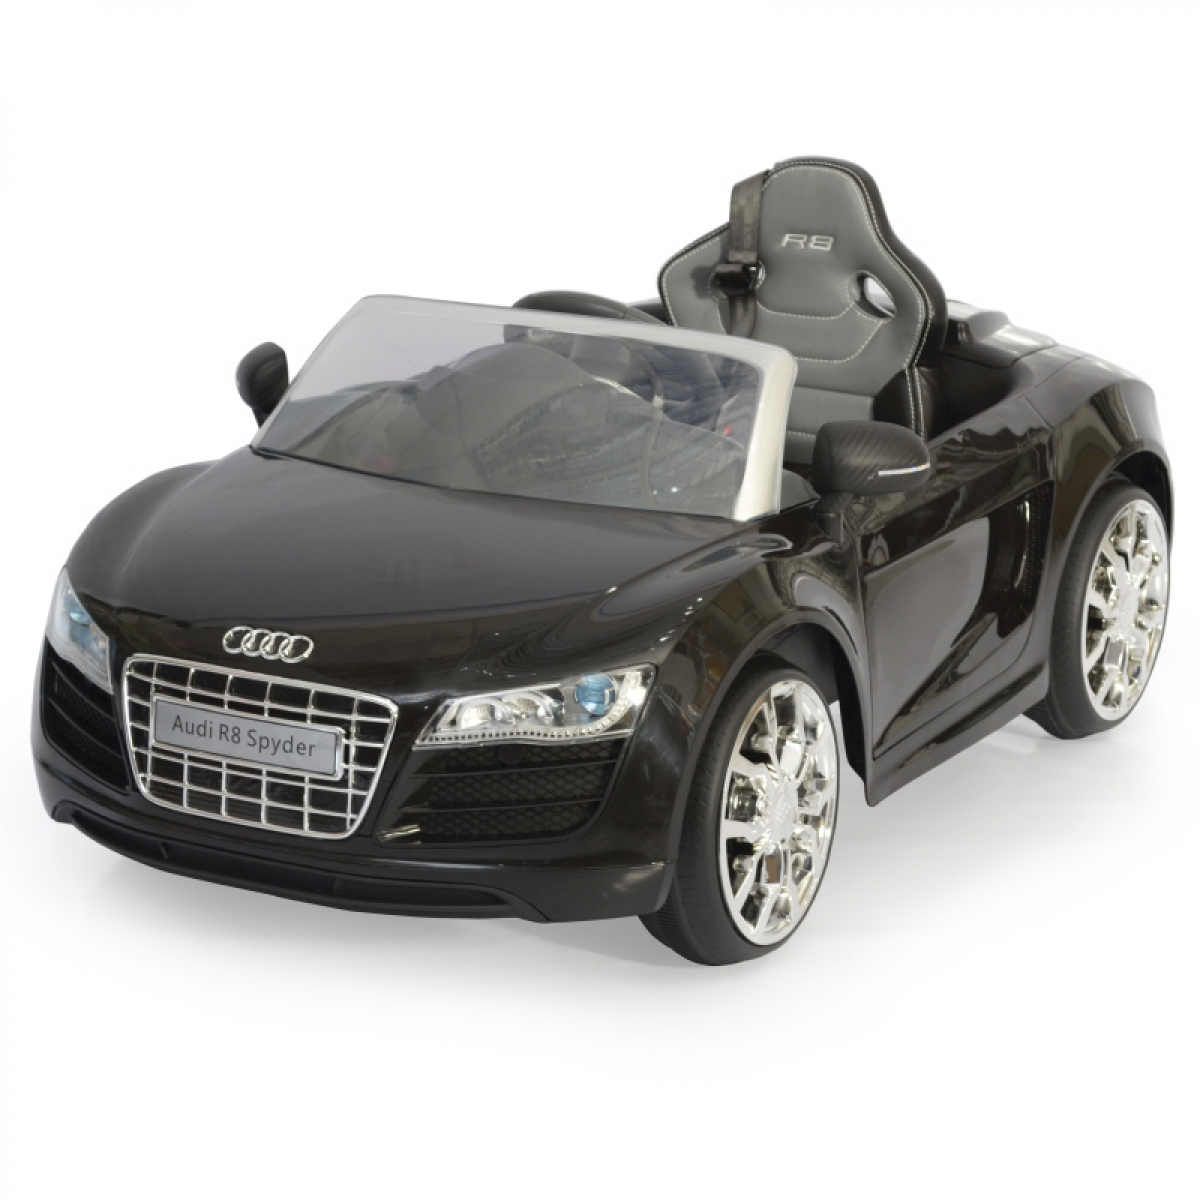 34037 AUDI R8 -SPYDER - Baby Battery Operated Cars/Bikes